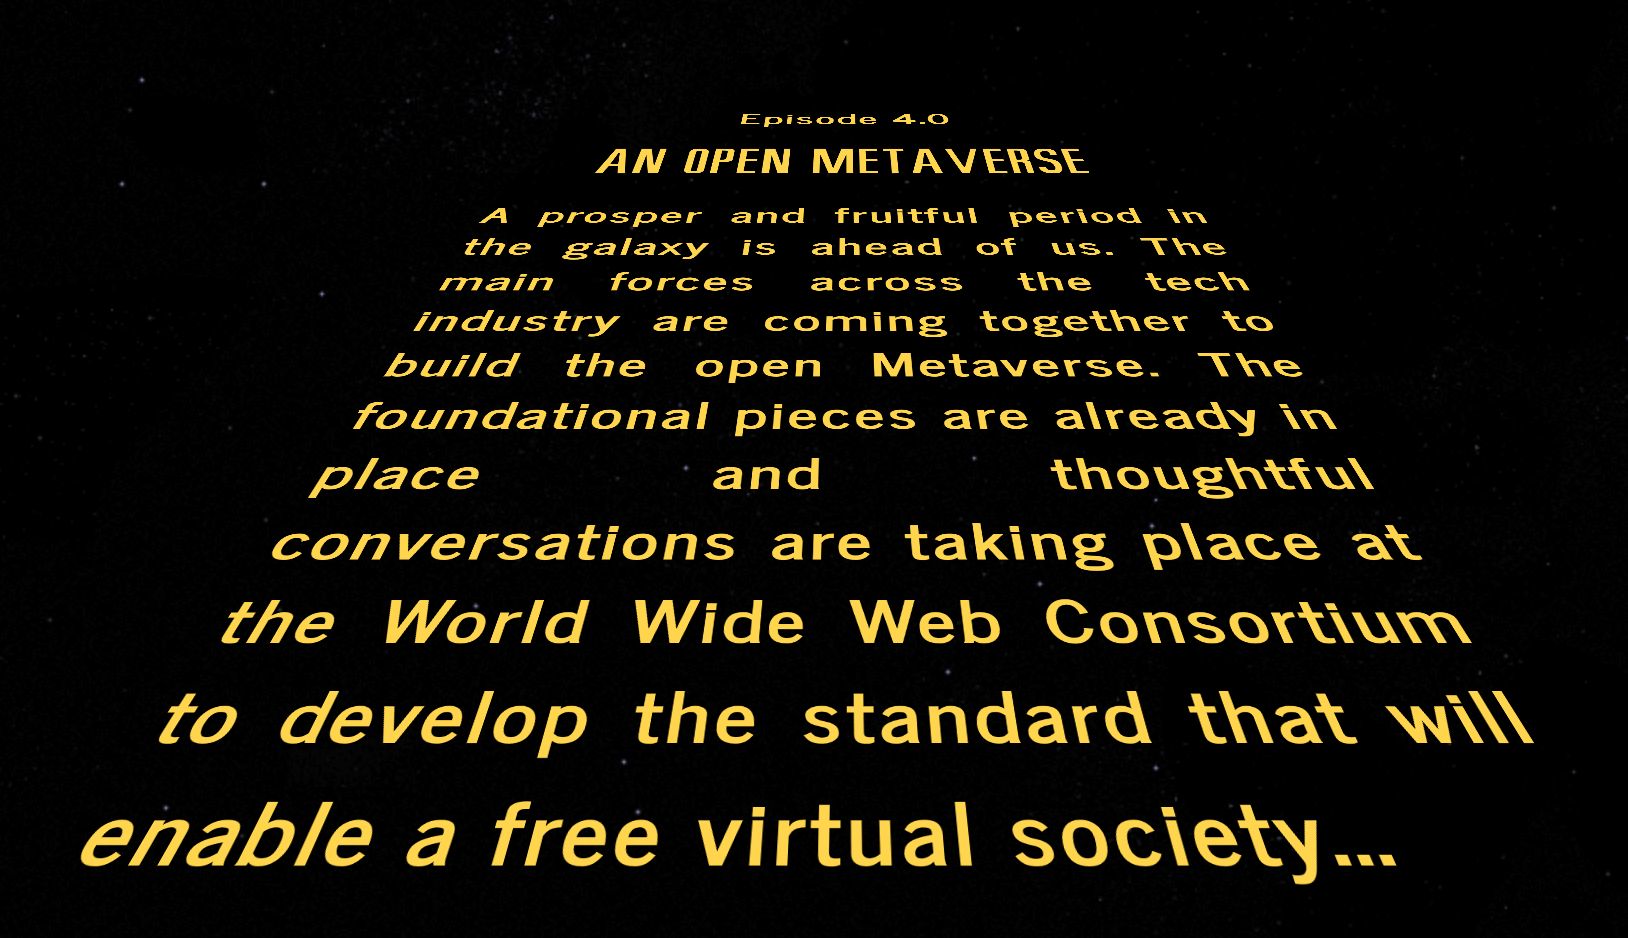 A prosper and fruitful period in the galaxy is ahead of us. The main forces across the tech industry are coming together to build the open Metaverse. The foundational pieces are already in place and thoughtful conversations are taking place at the World Wide Web Consortium to develop the standard that will enable a free virtual society...